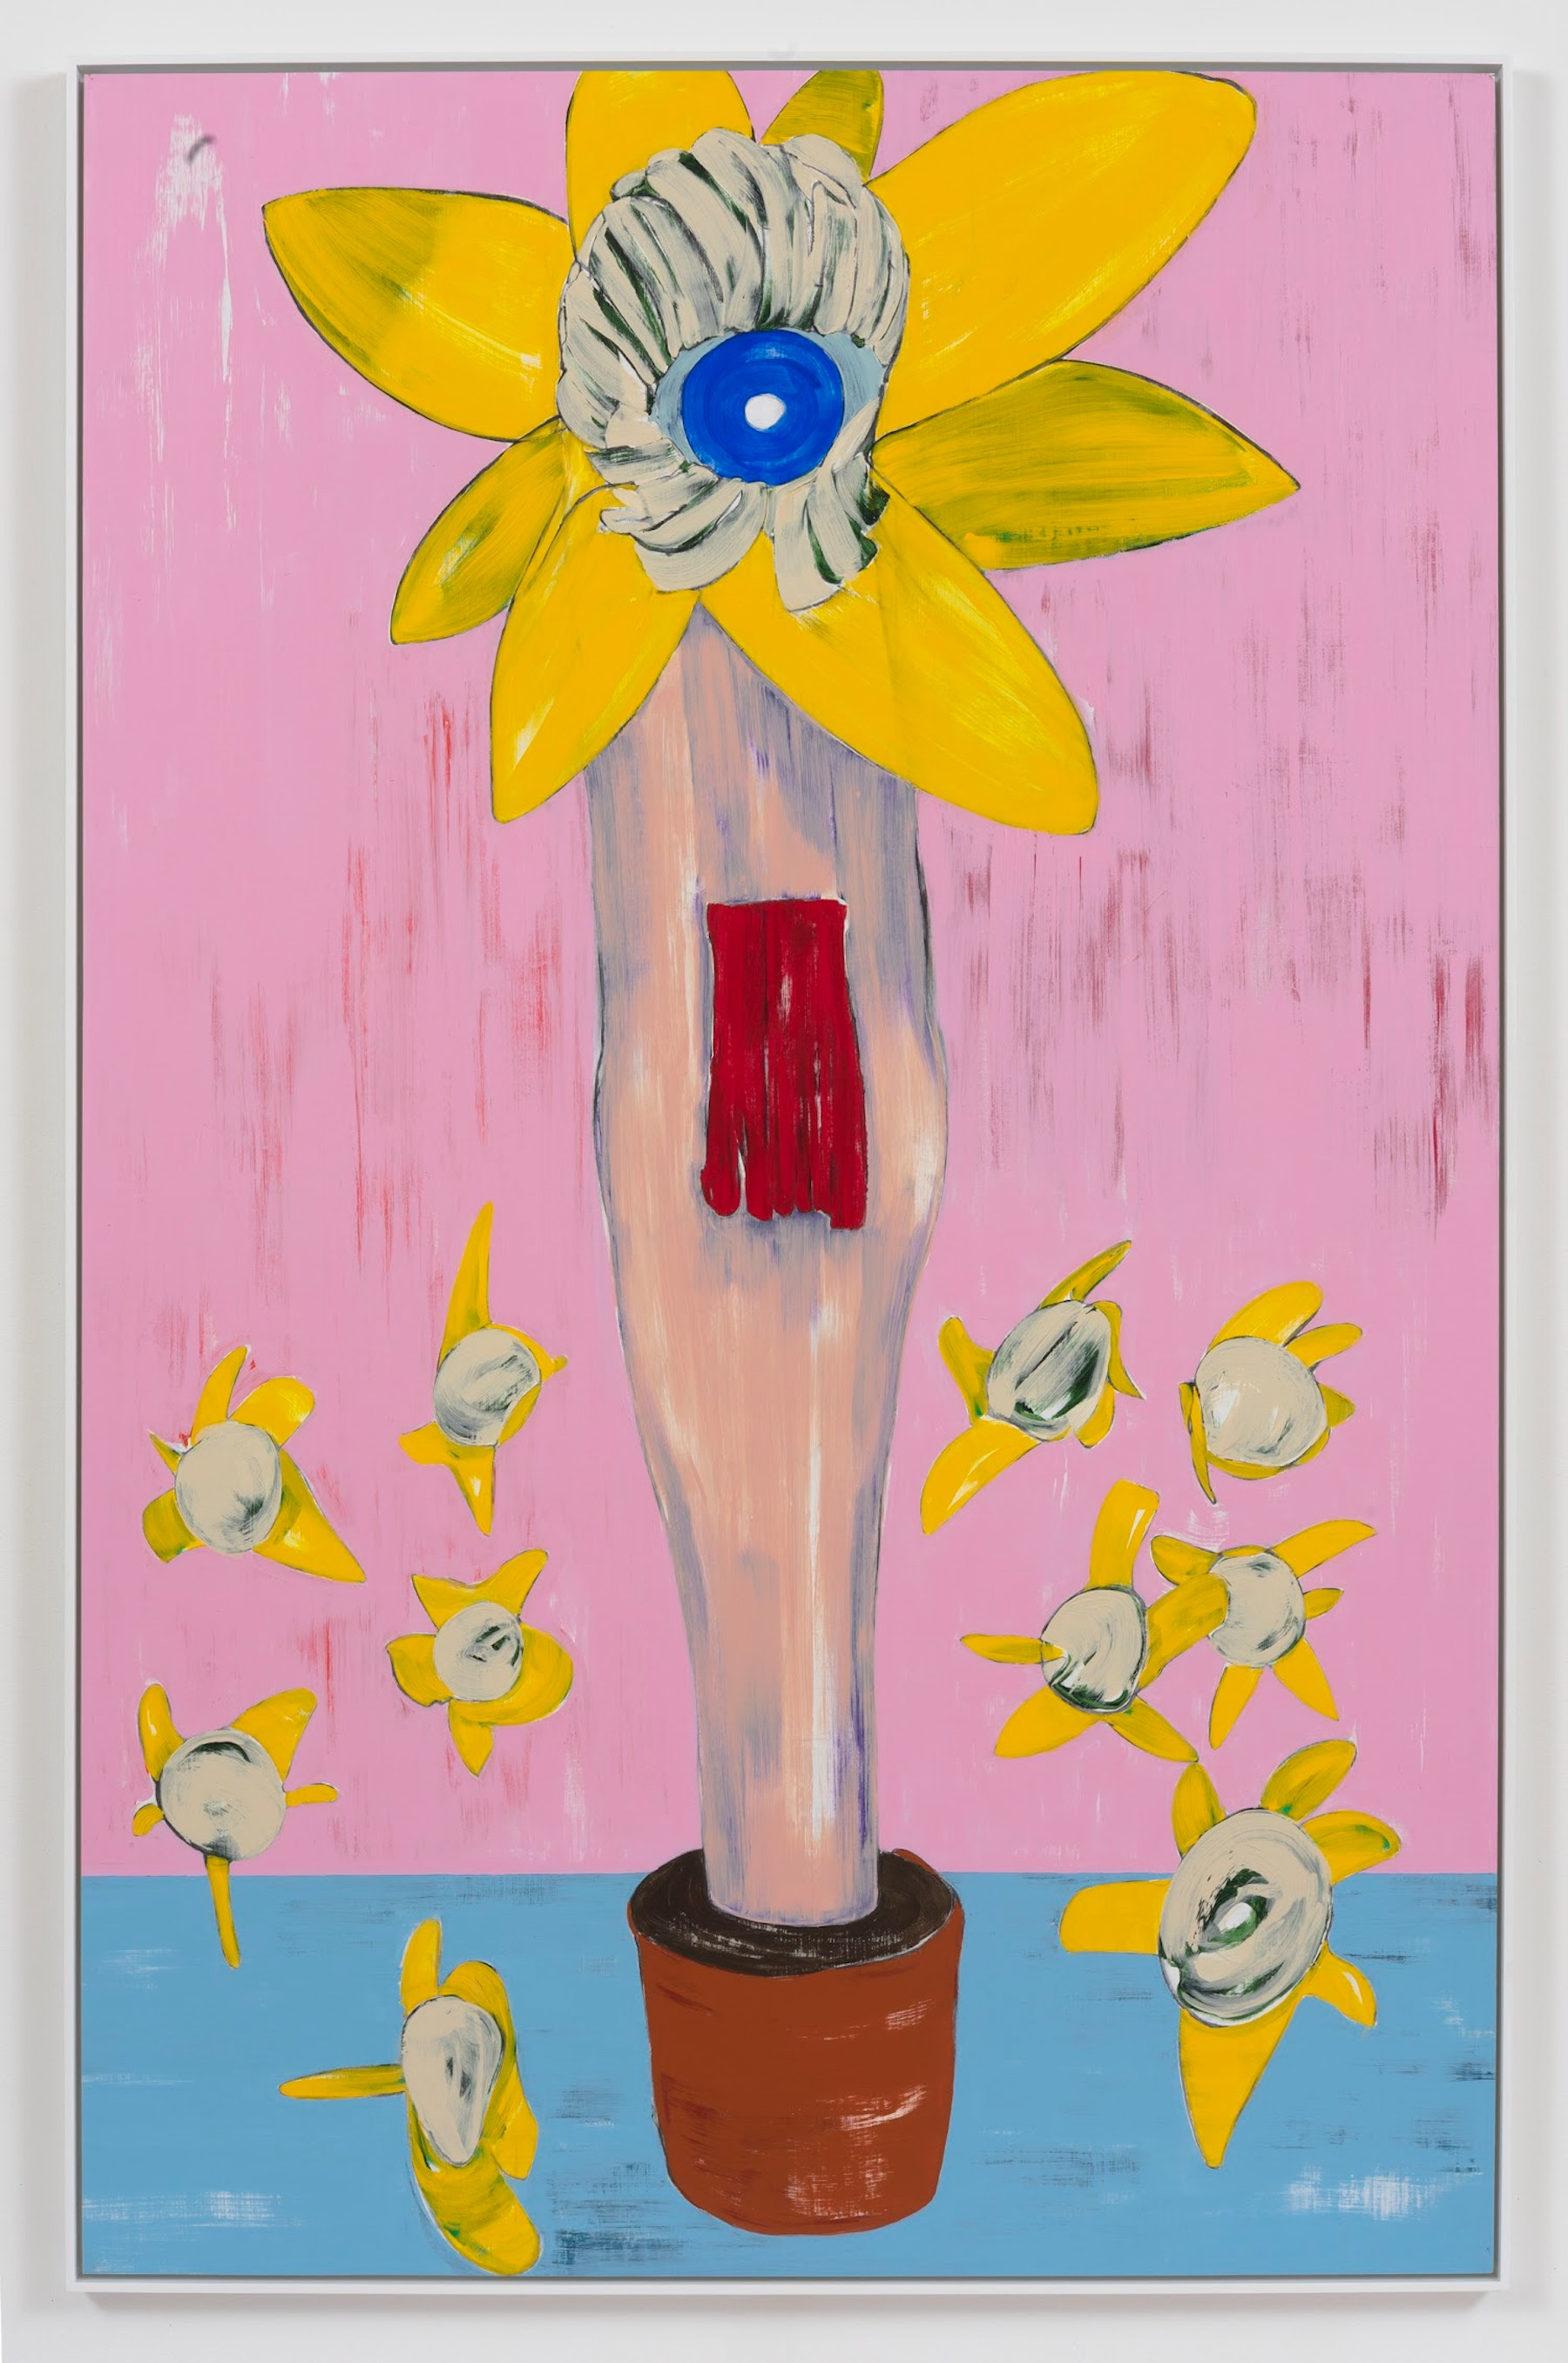 """Nicola Tyson """"Flowerpot,"""" 2013 Acrylic on unstretched linen 85"""" H x 54.50"""" W (215.9 cm H x 138.43 cm W) Inventory #TYS114 Courtesy of the artist and Vielmetter Los Angeles Photo credit: Robert Wedemeyer On reverse"""